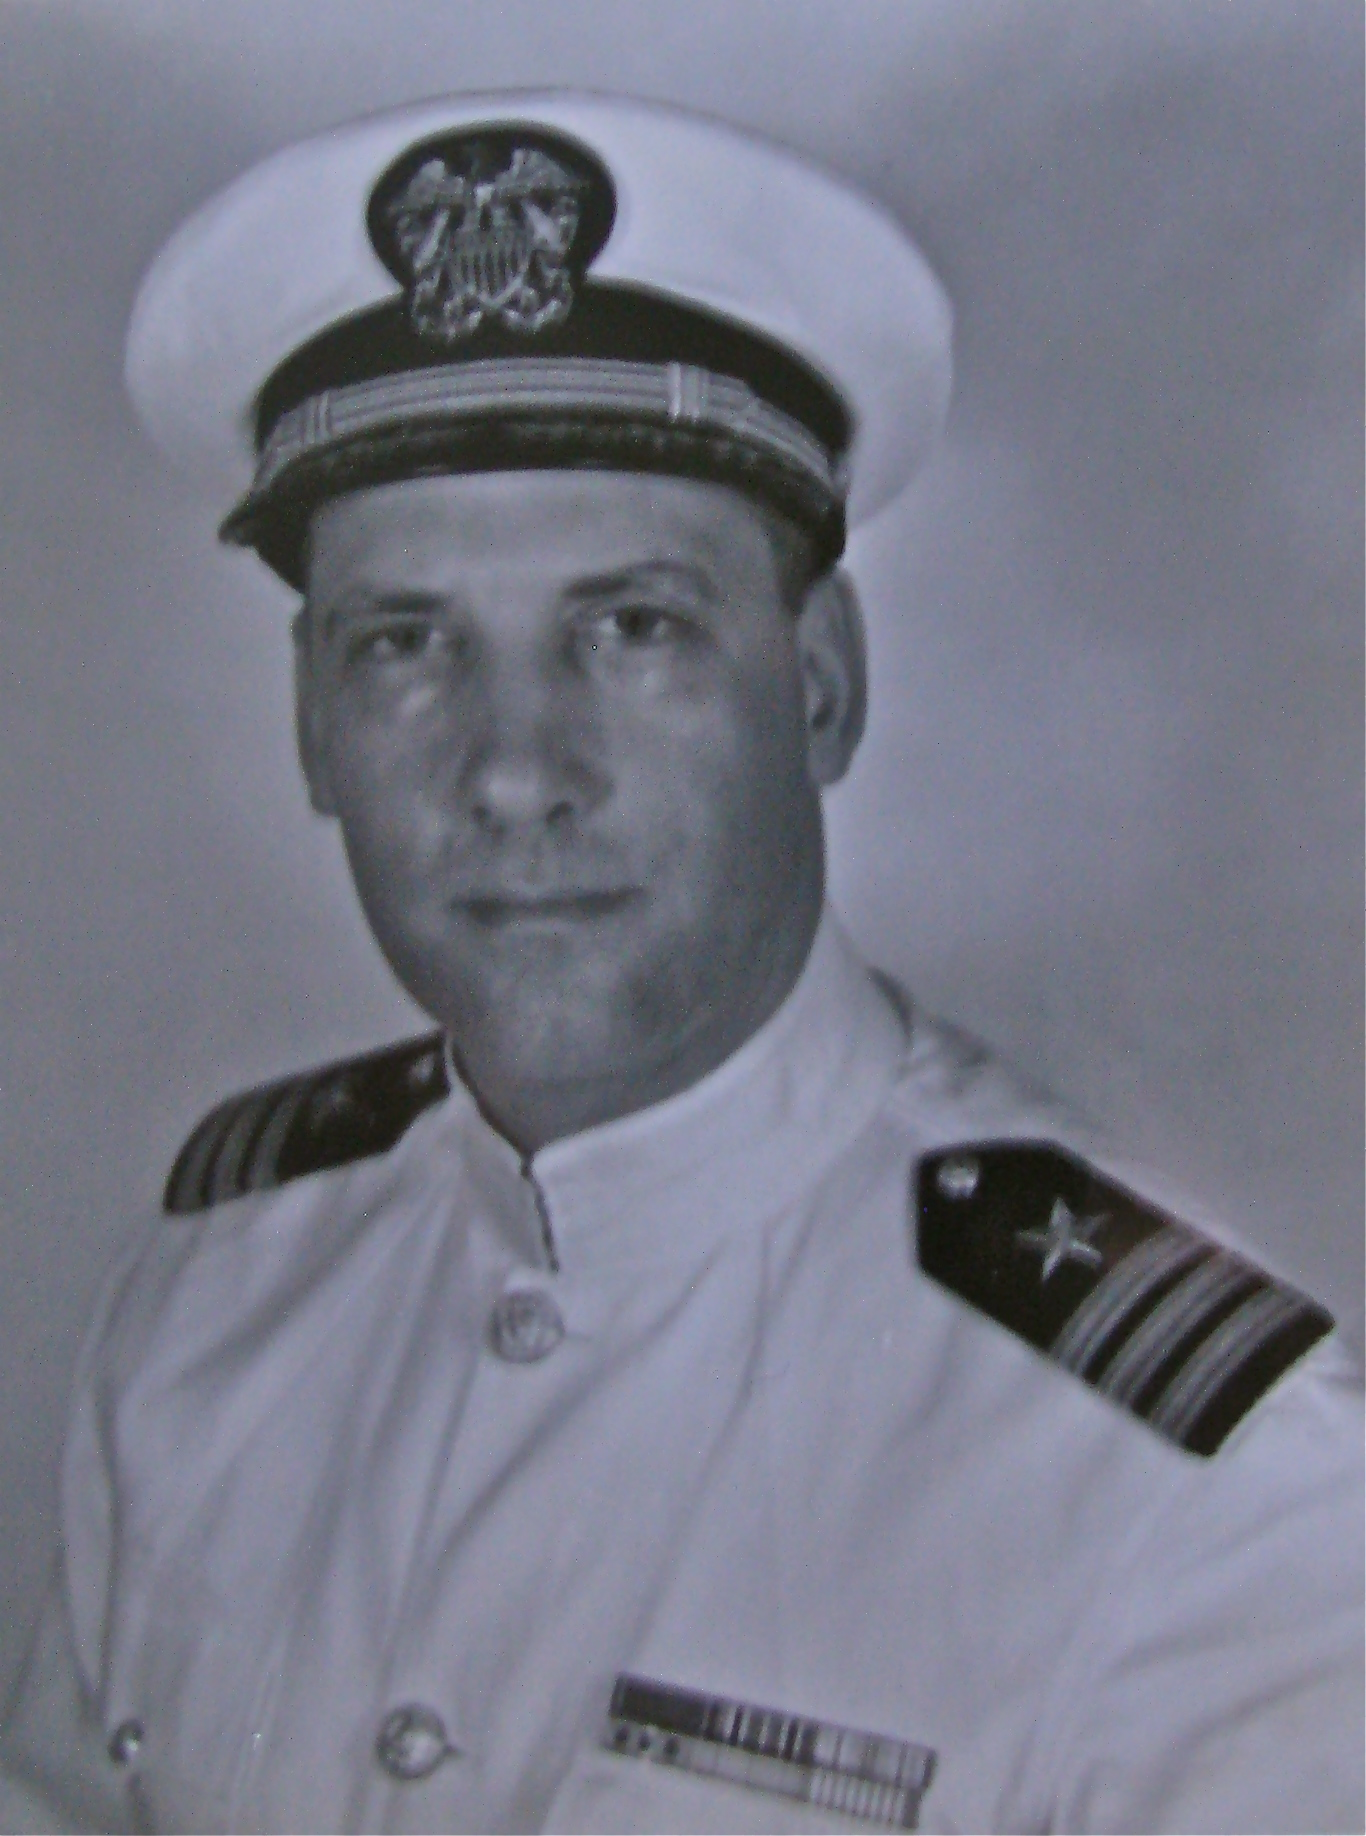 ... dress uniform. He served in the U.S. Navy and the Reserves from 1943